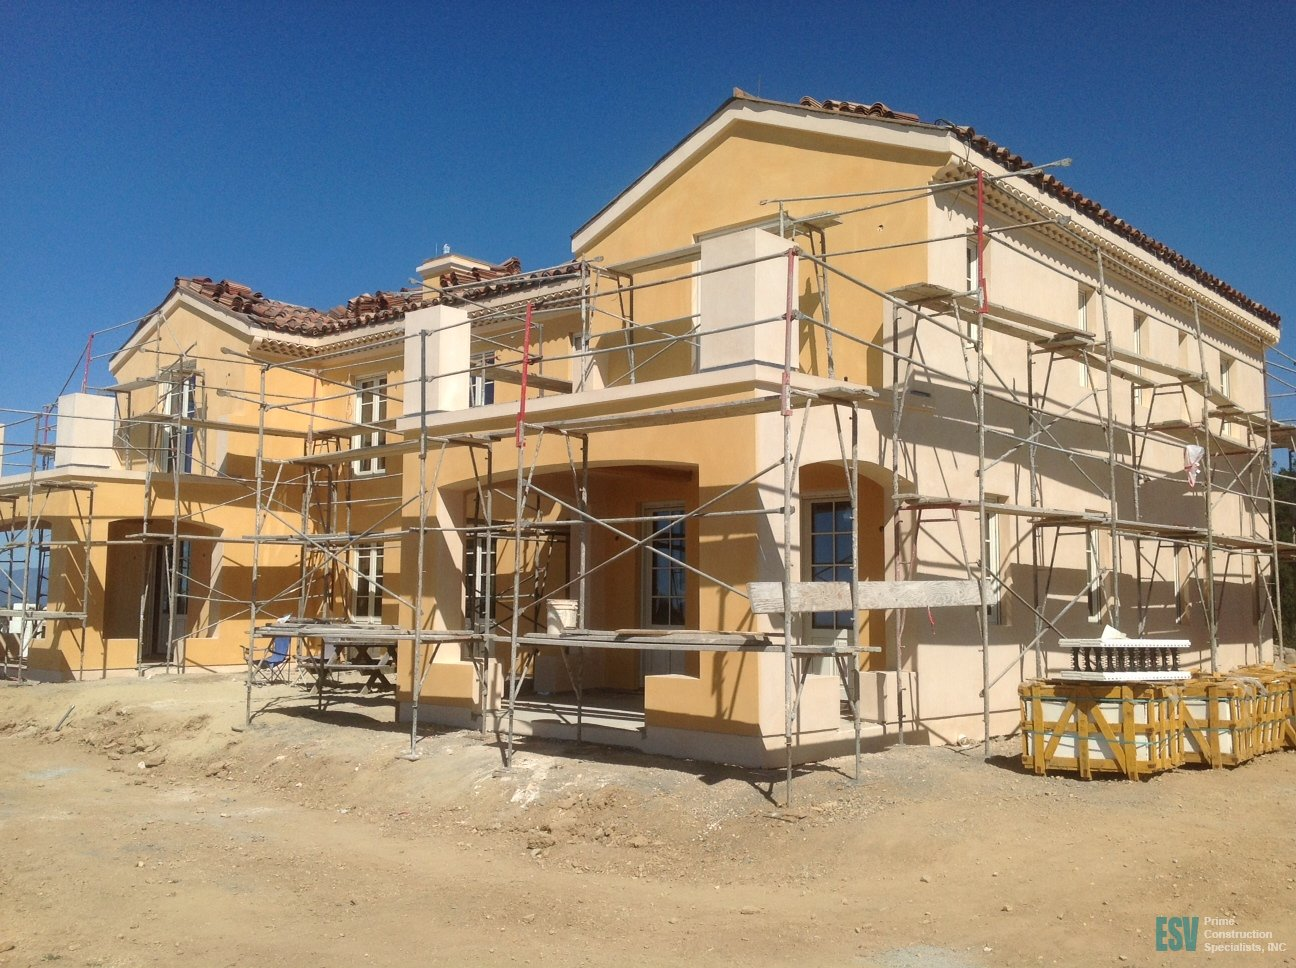 5 Things About New Home Constructions That You Should Know